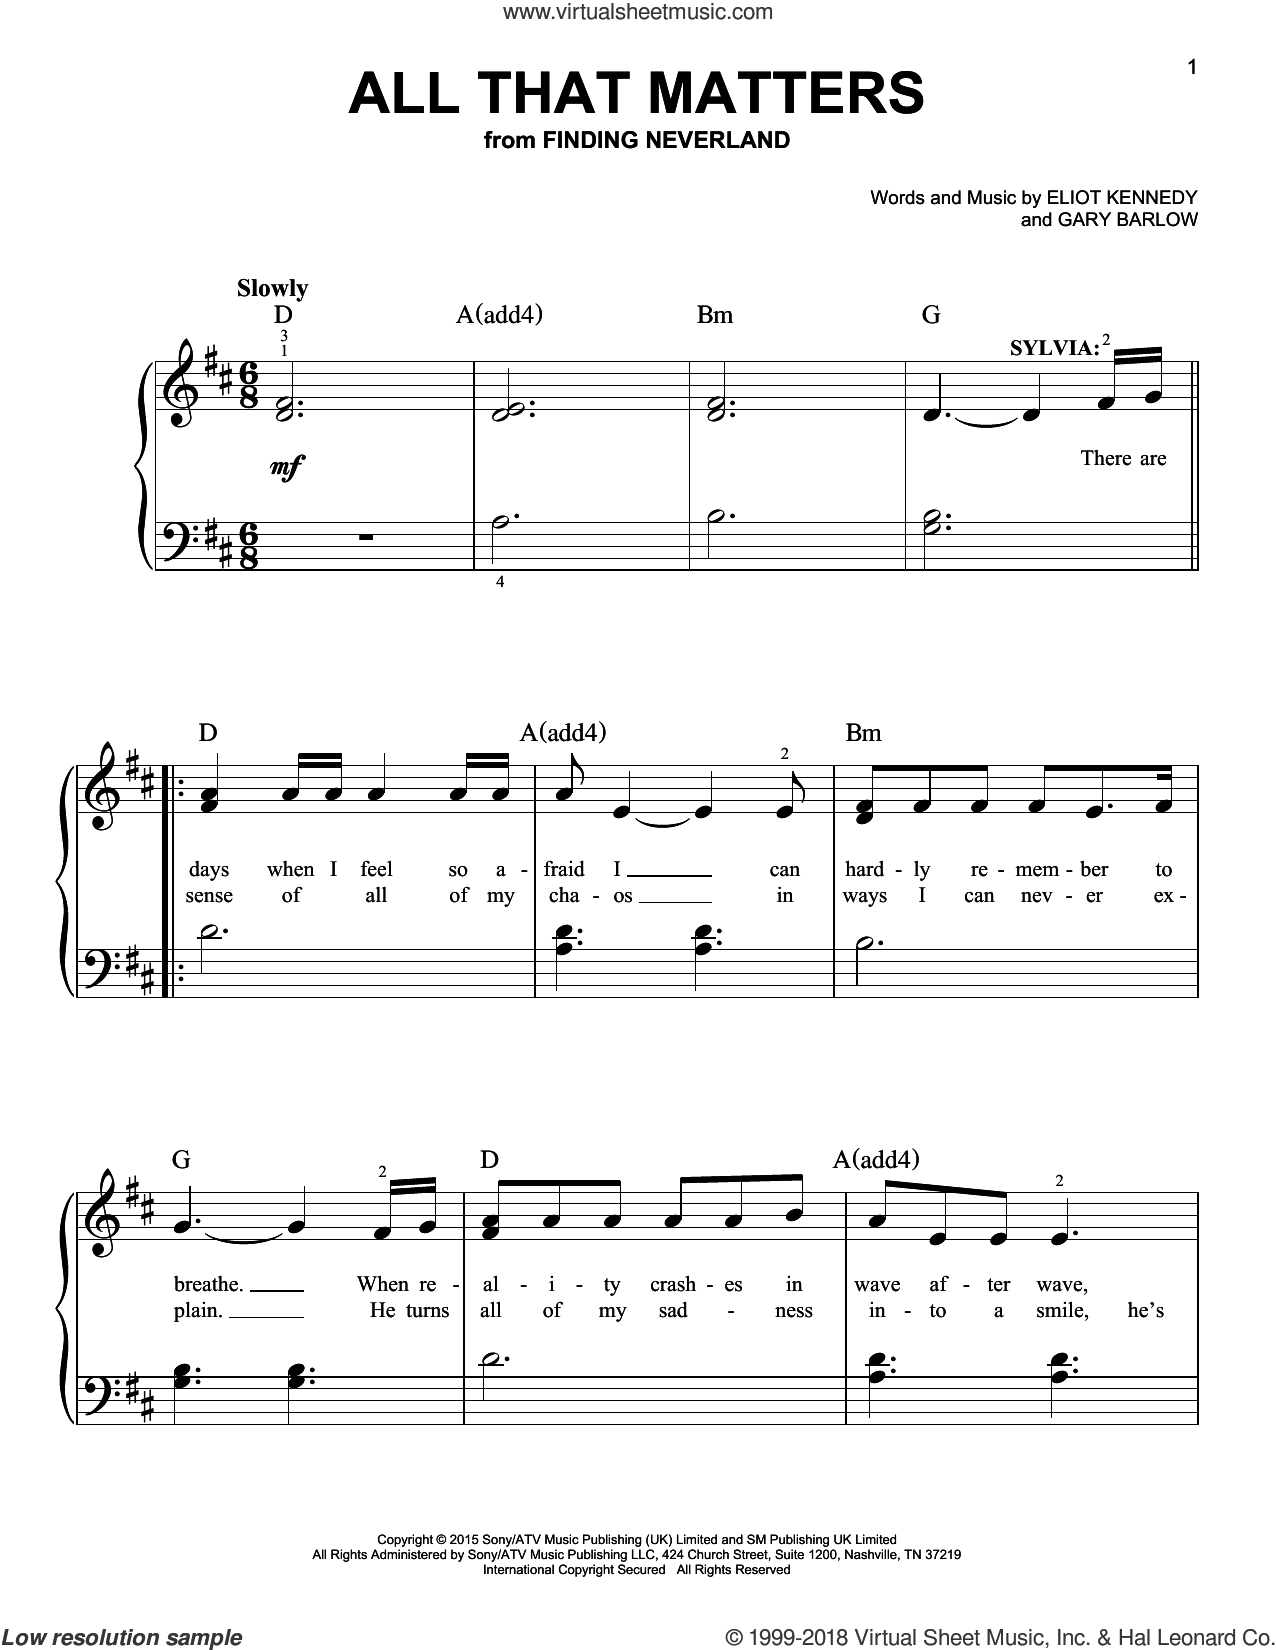 All That Matters sheet music for piano solo by Gary Barlow & Eliot Kennedy, Eliot Kennedy and Gary Barlow. Score Image Preview.